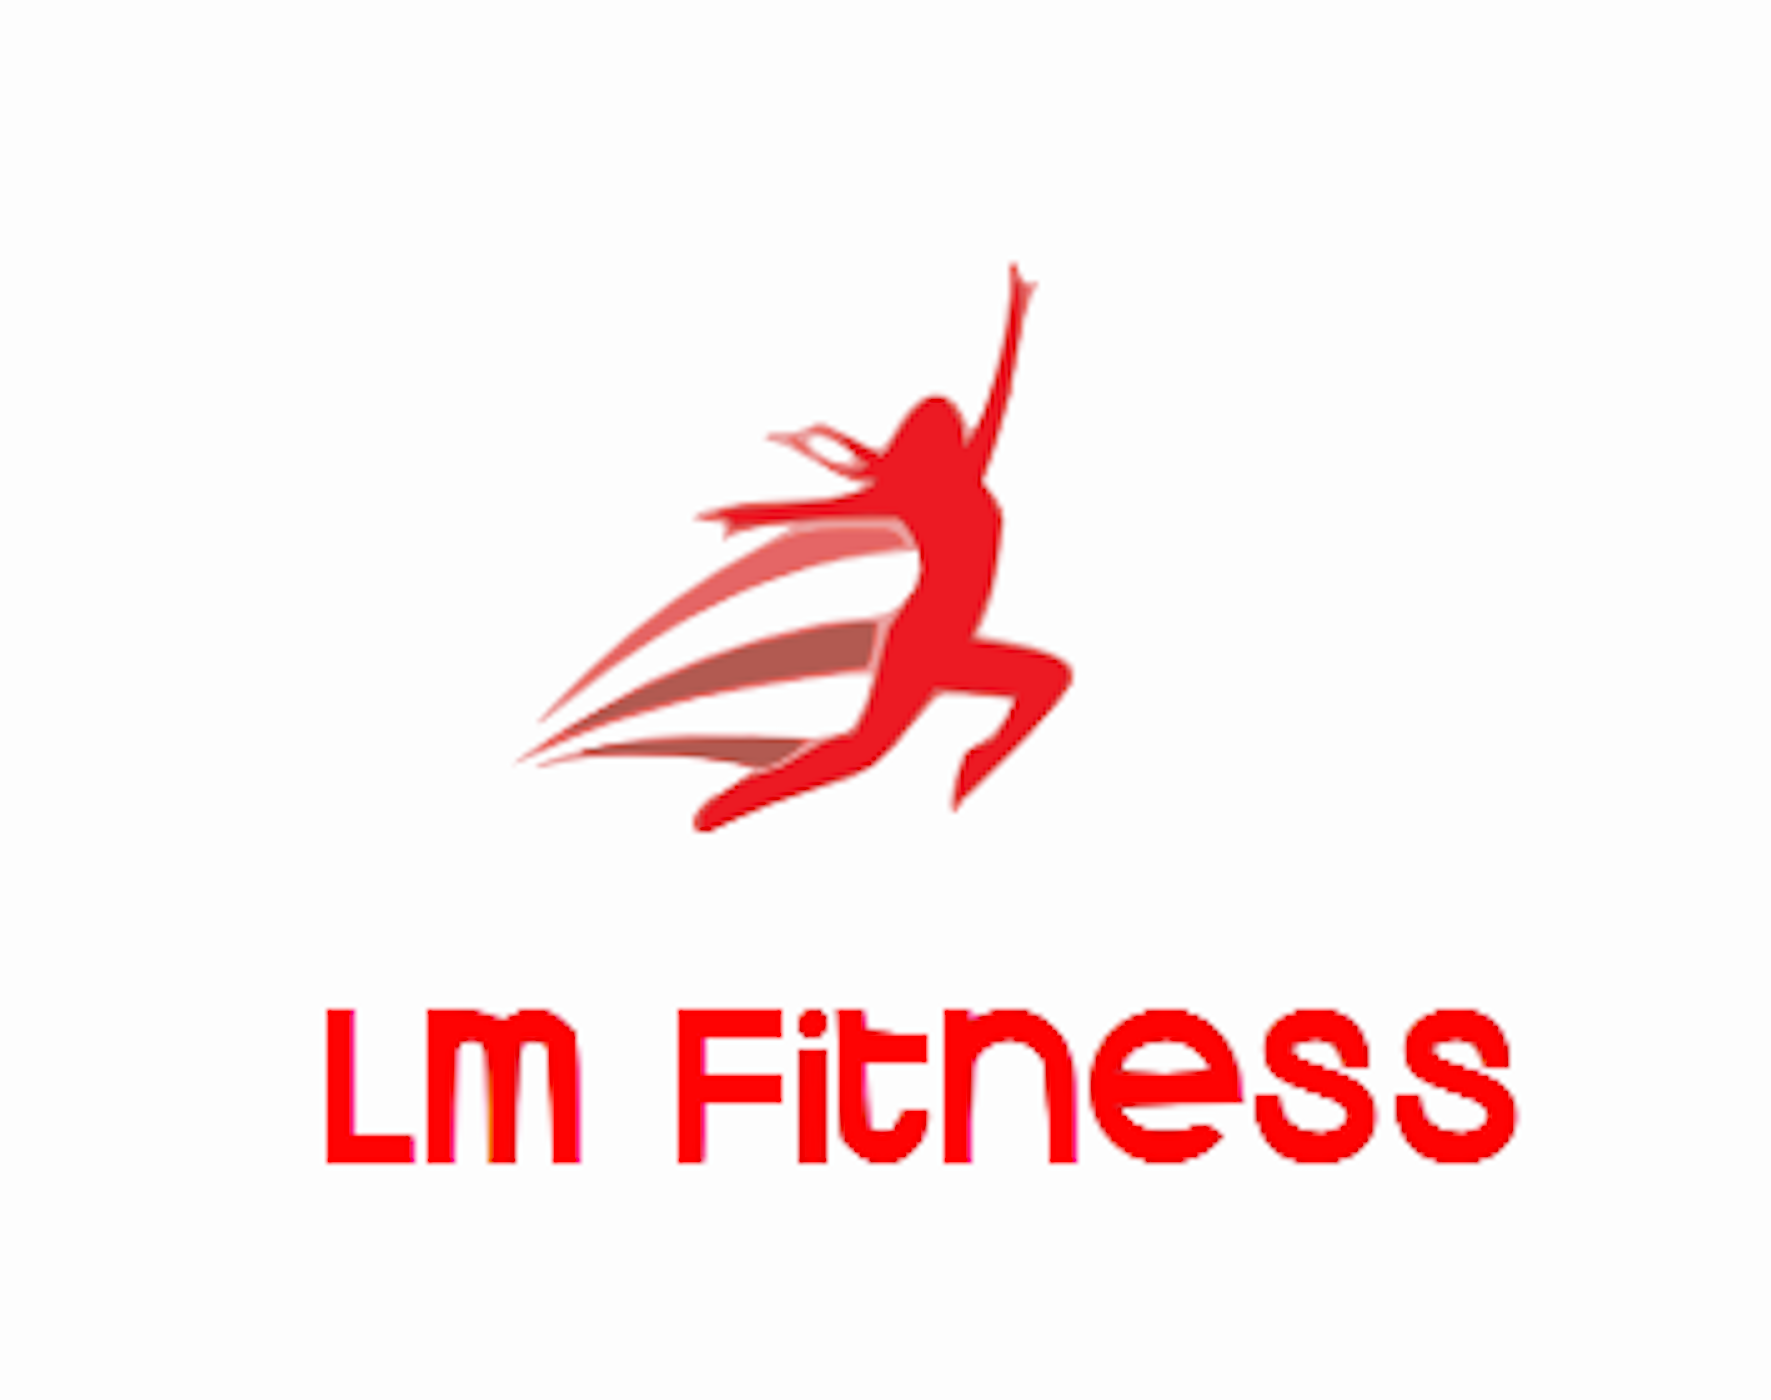 LM Fitness